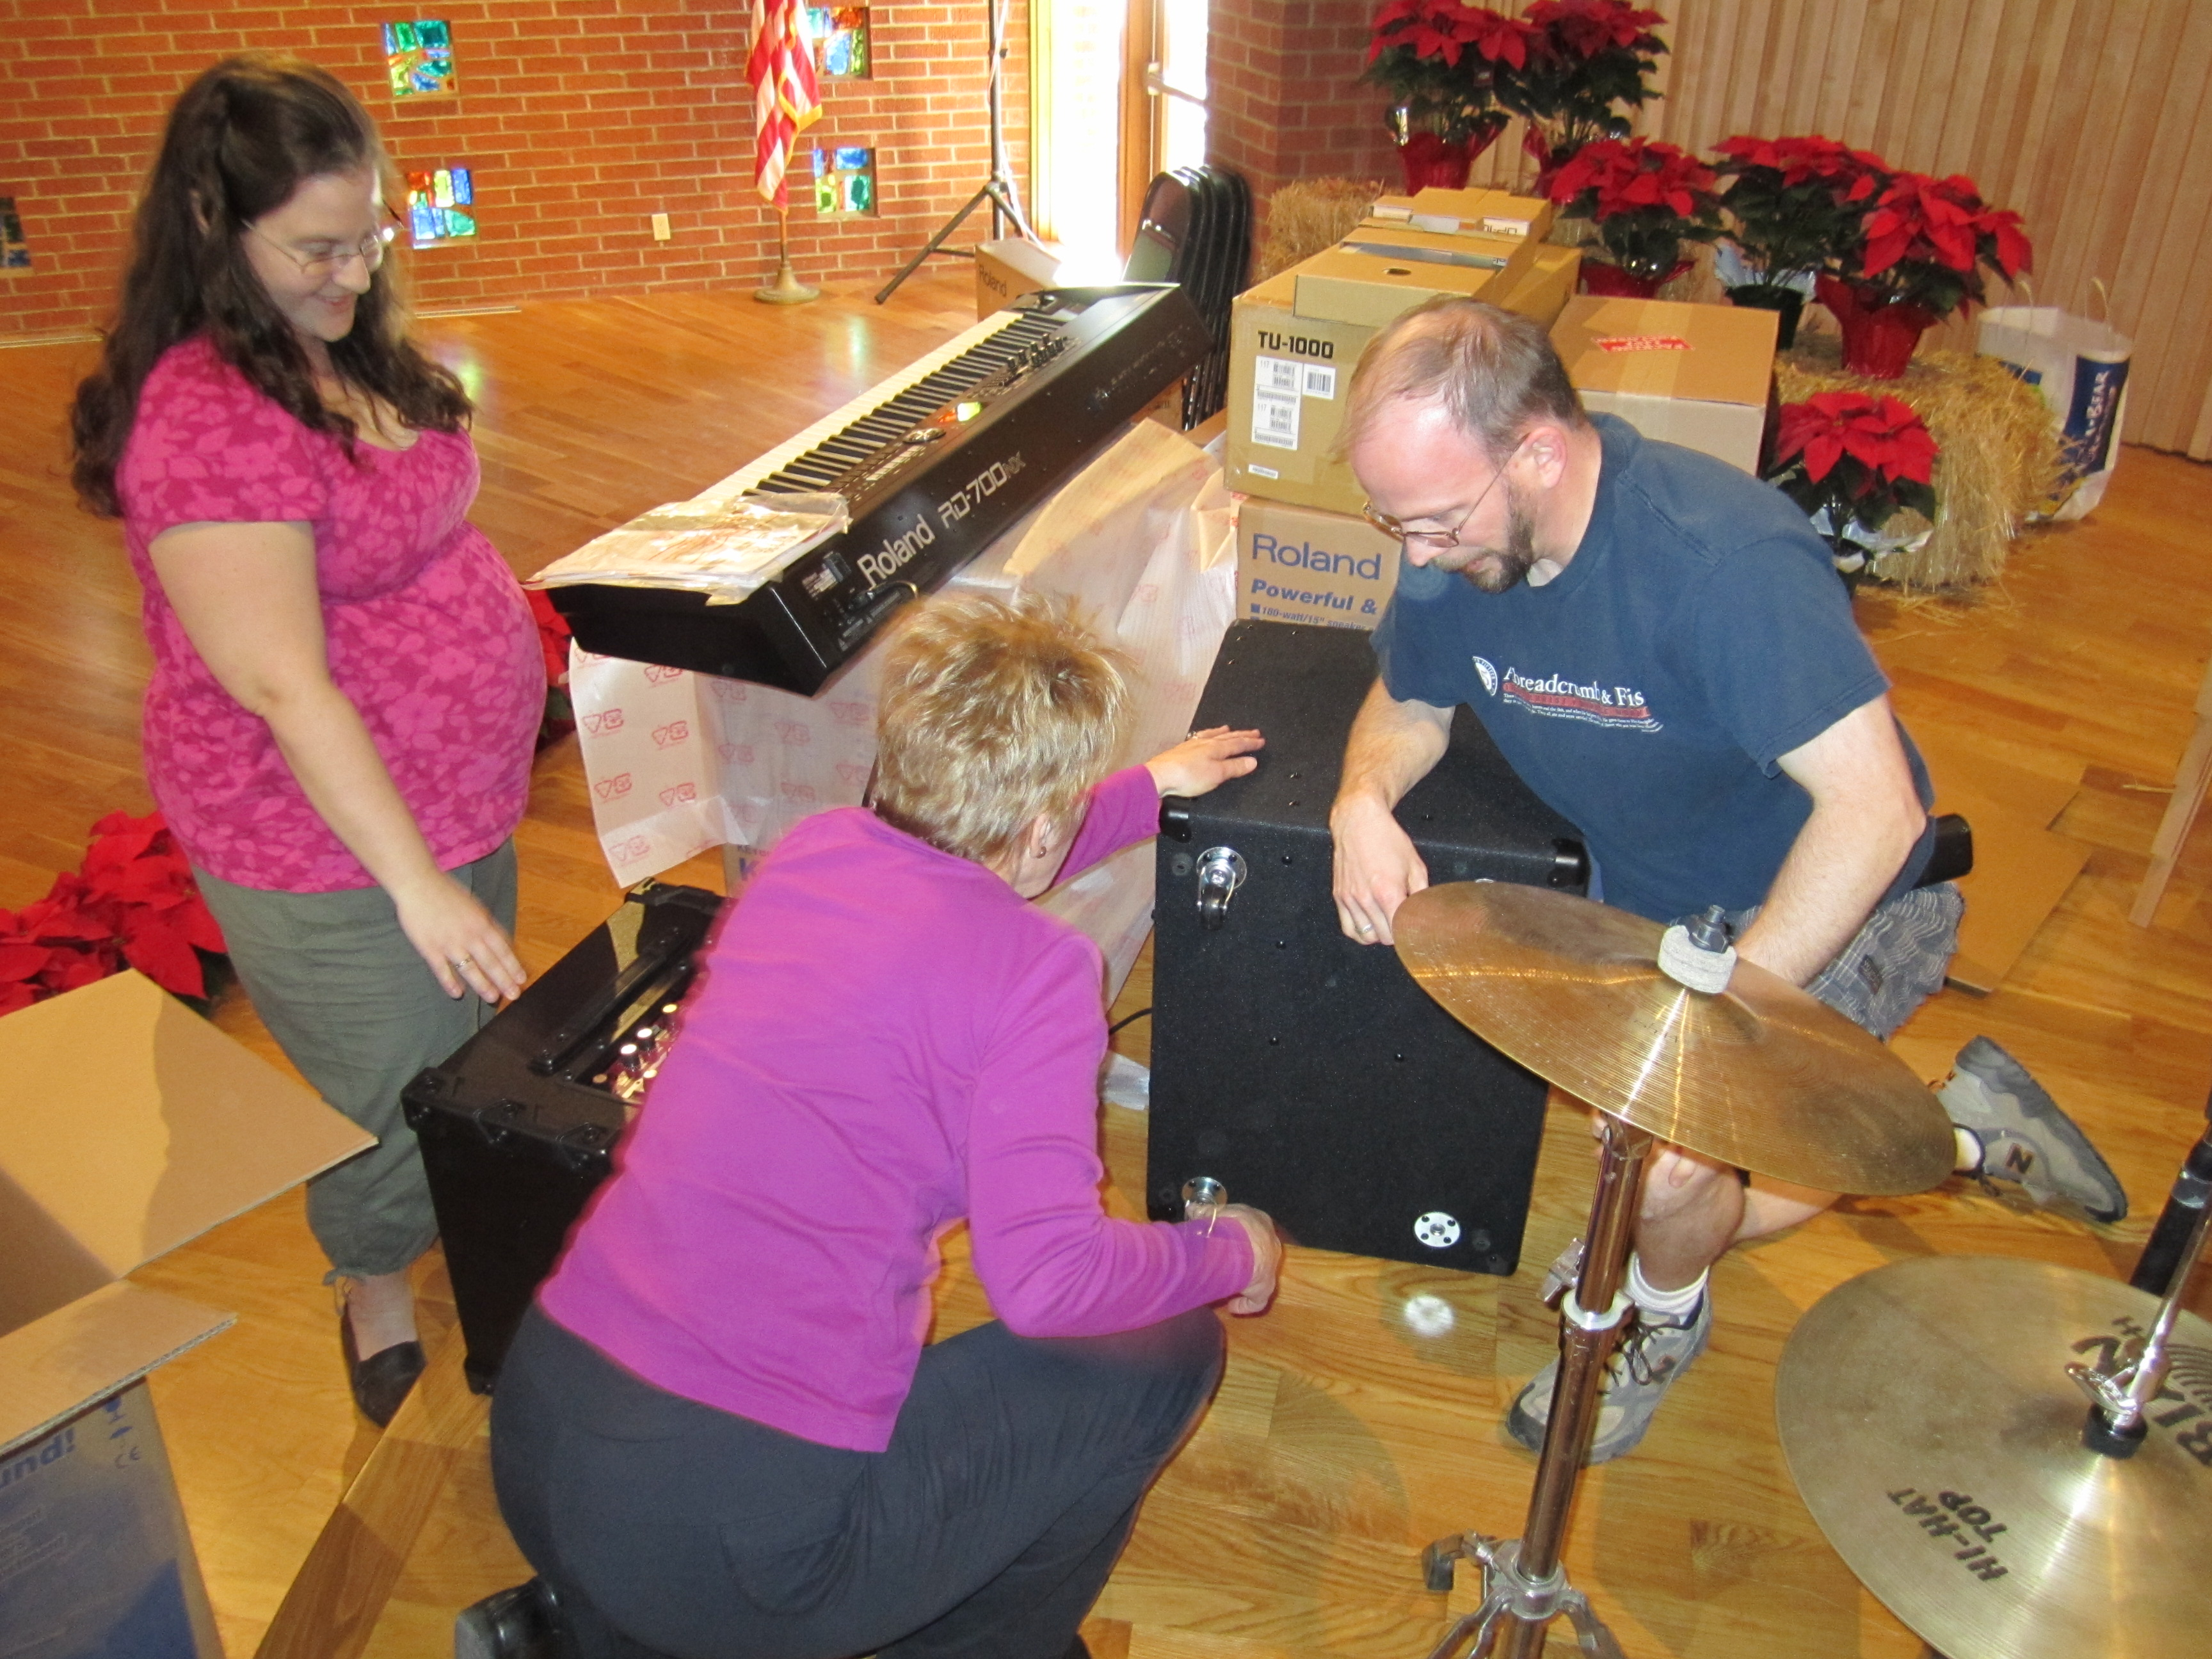 Pastors Lindsey (left) and Robbie (right) Carnes unpacking the new Roland band equipment